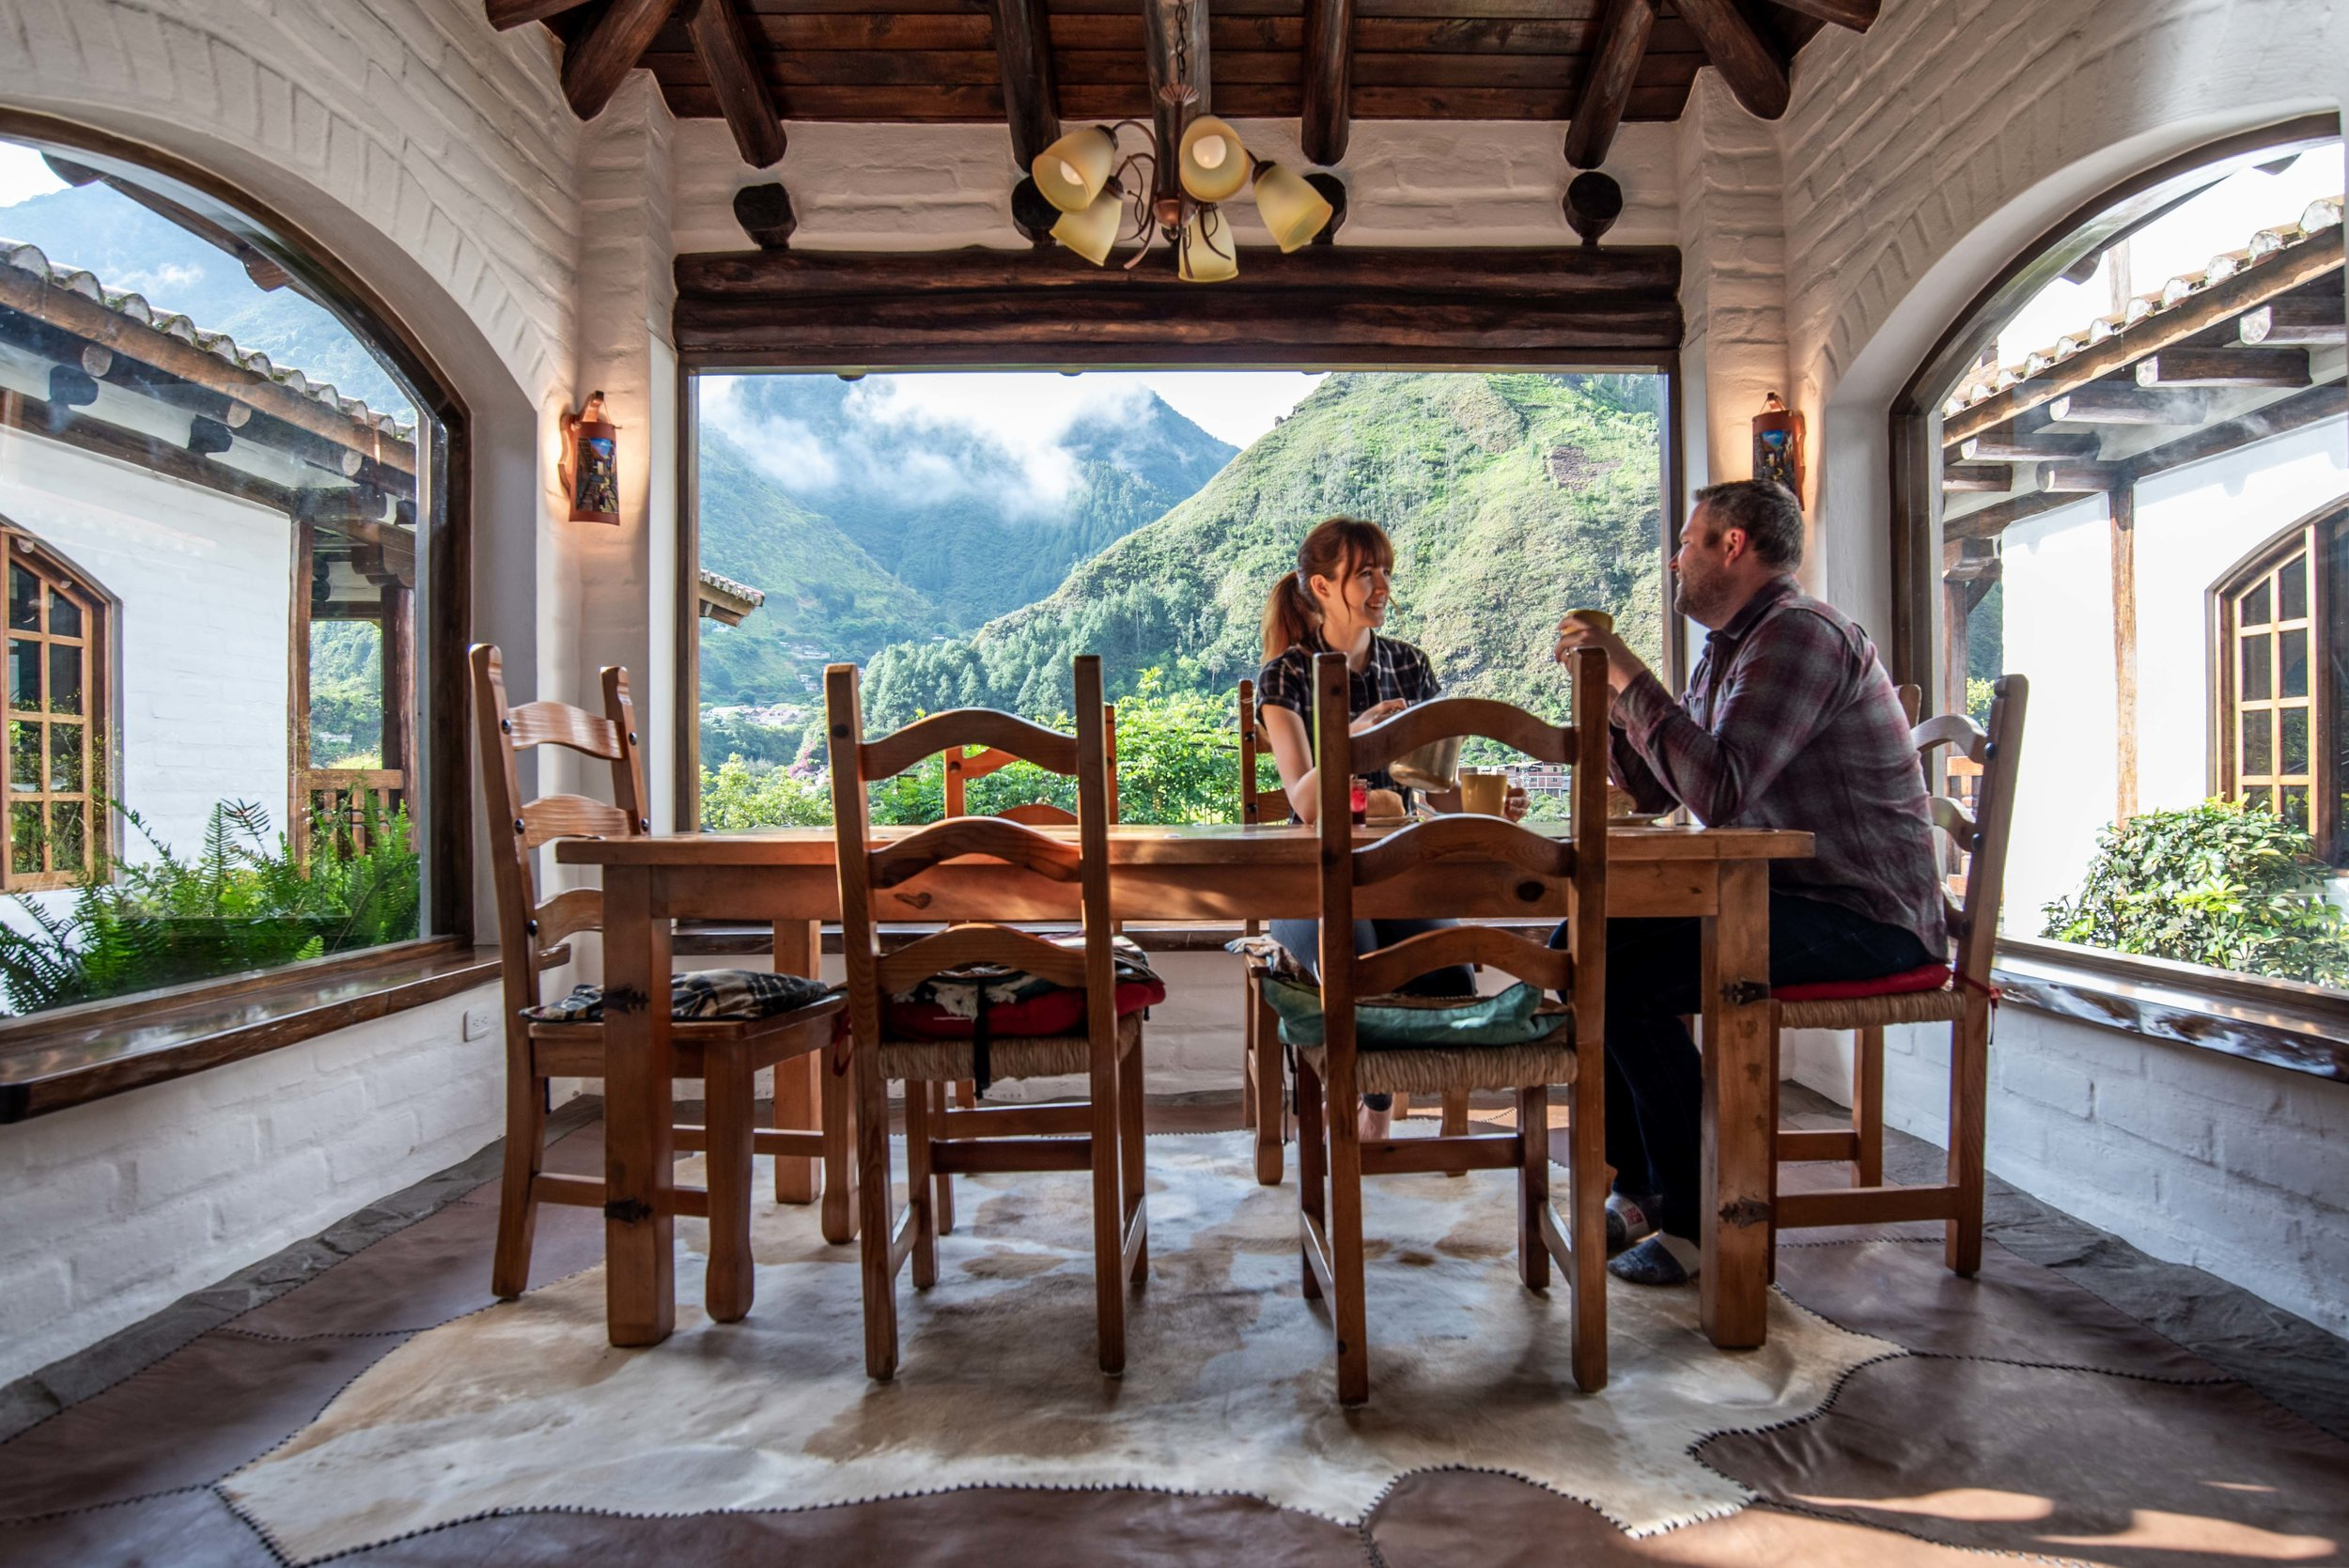 The dining room and the views.